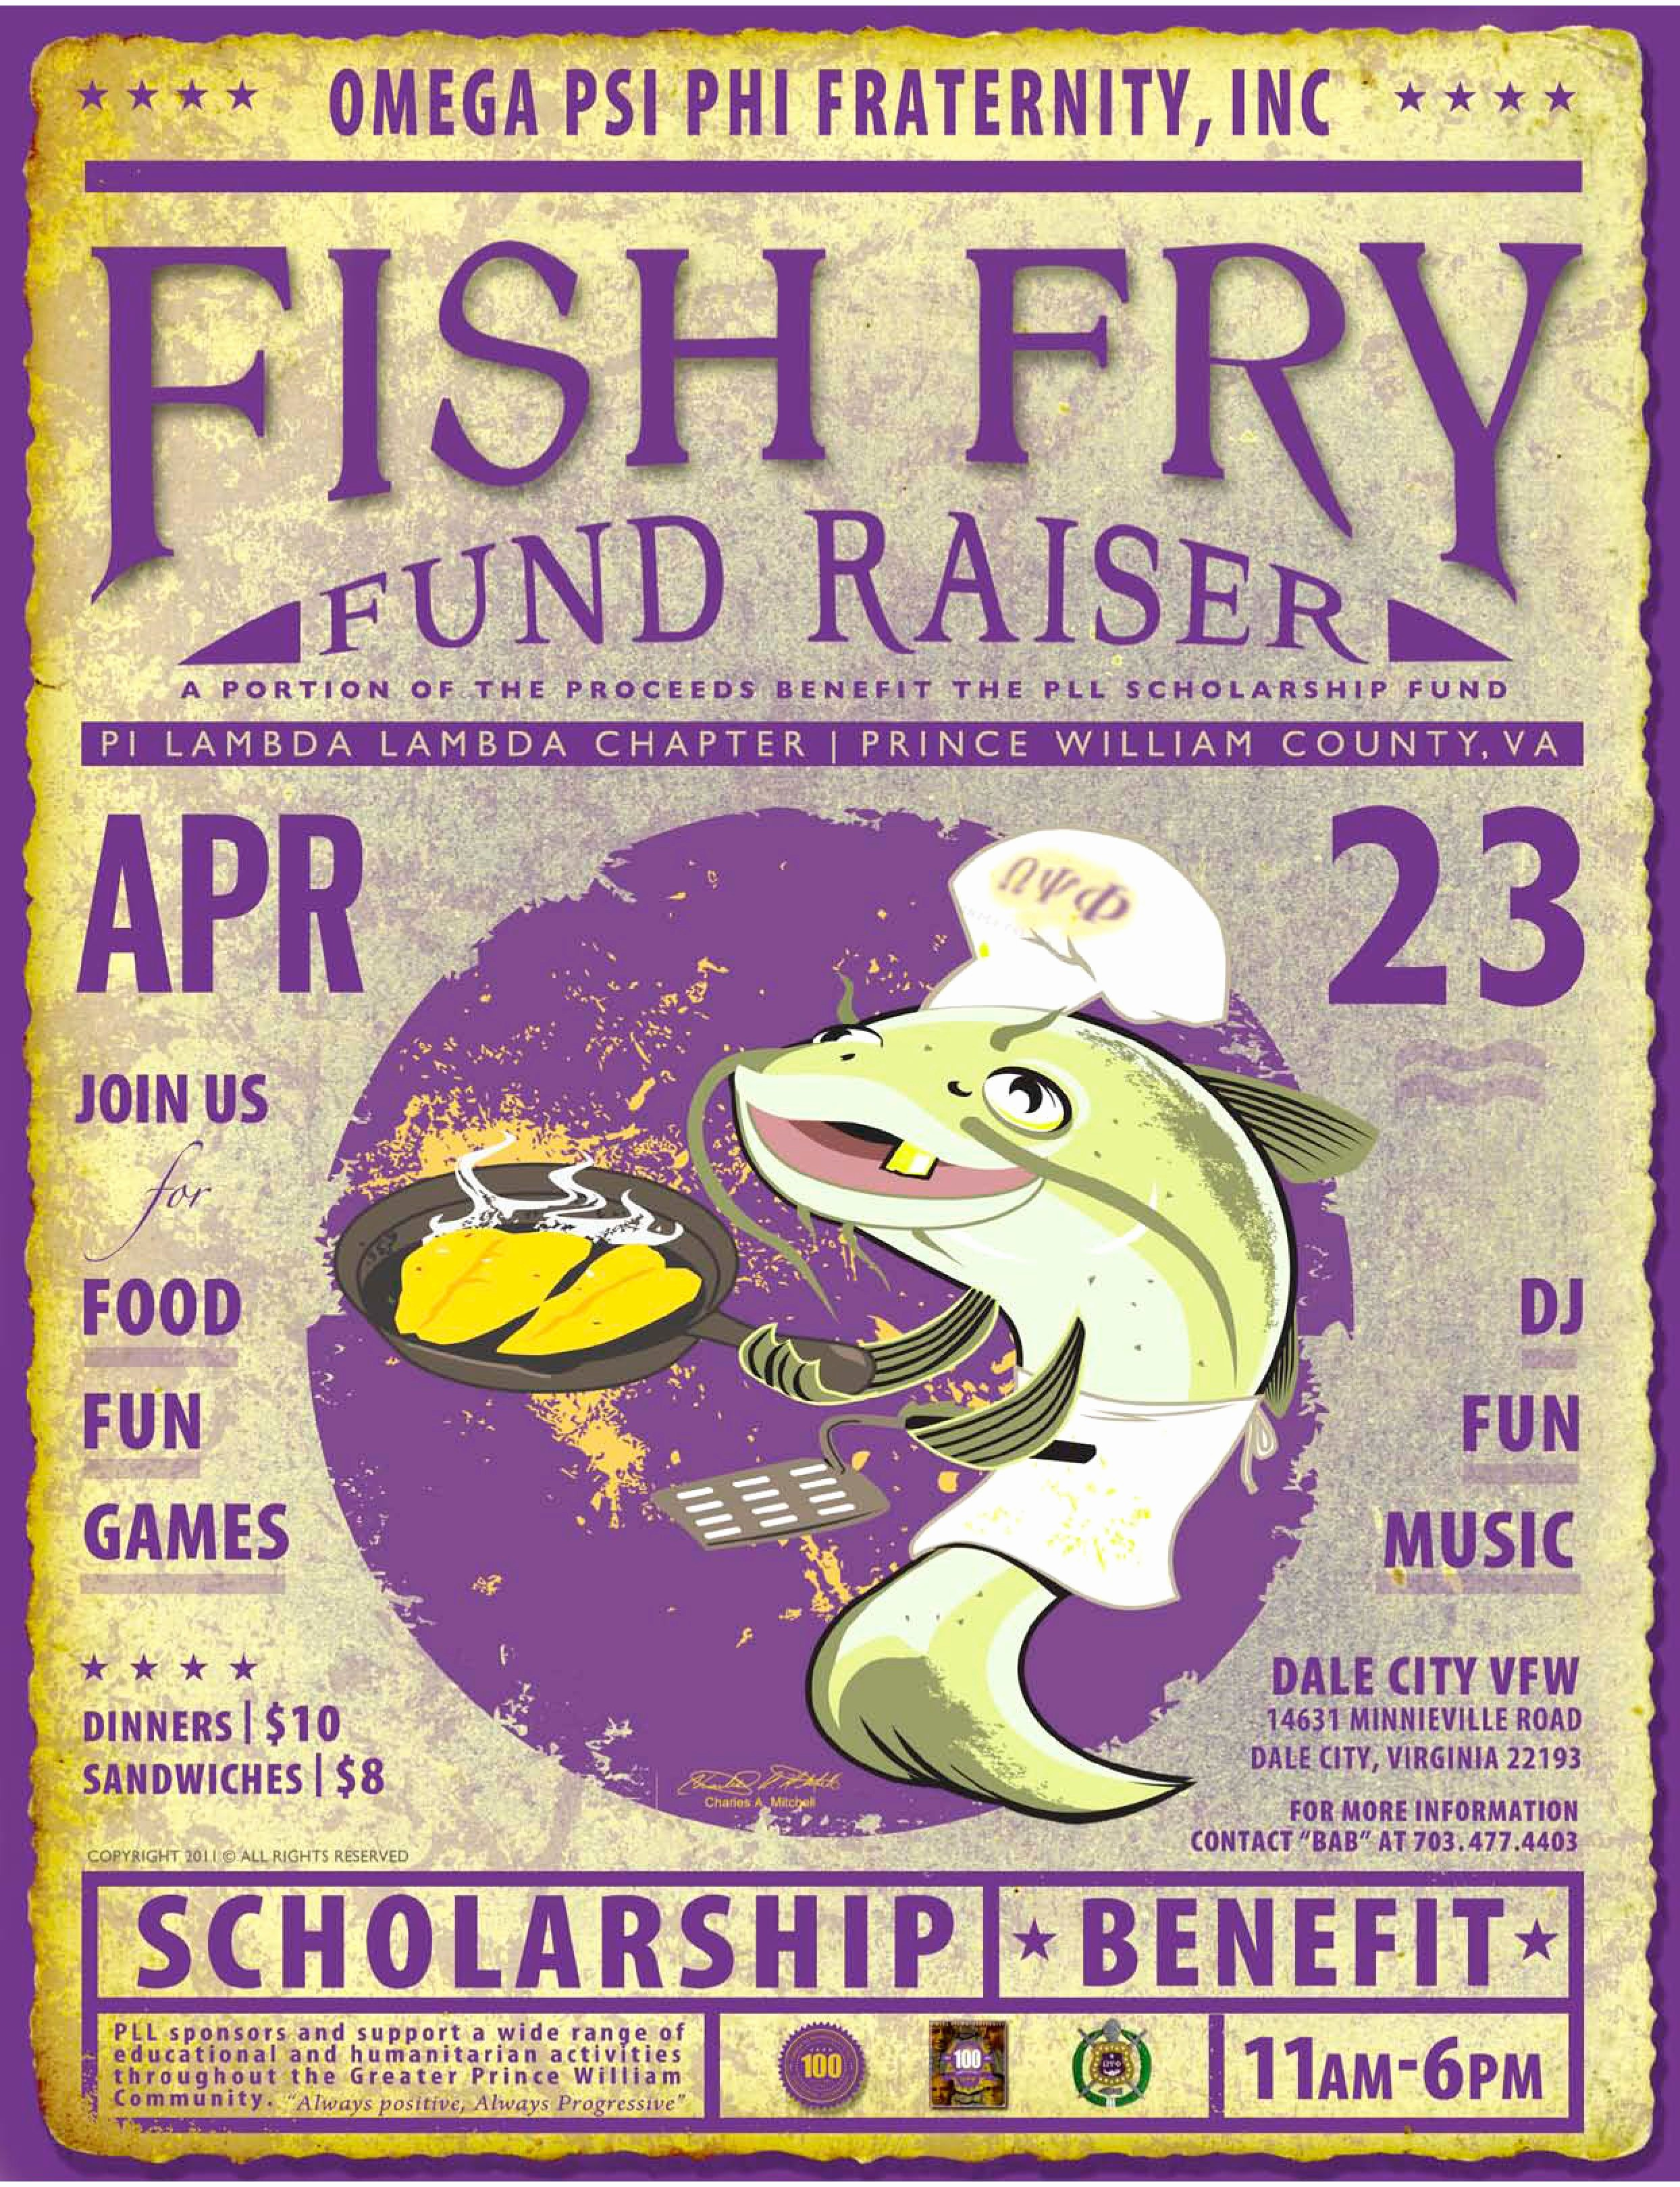 Free Fish Fry Flyer Template Fresh Great Poster for A Fish Fry Fundraising event You Can